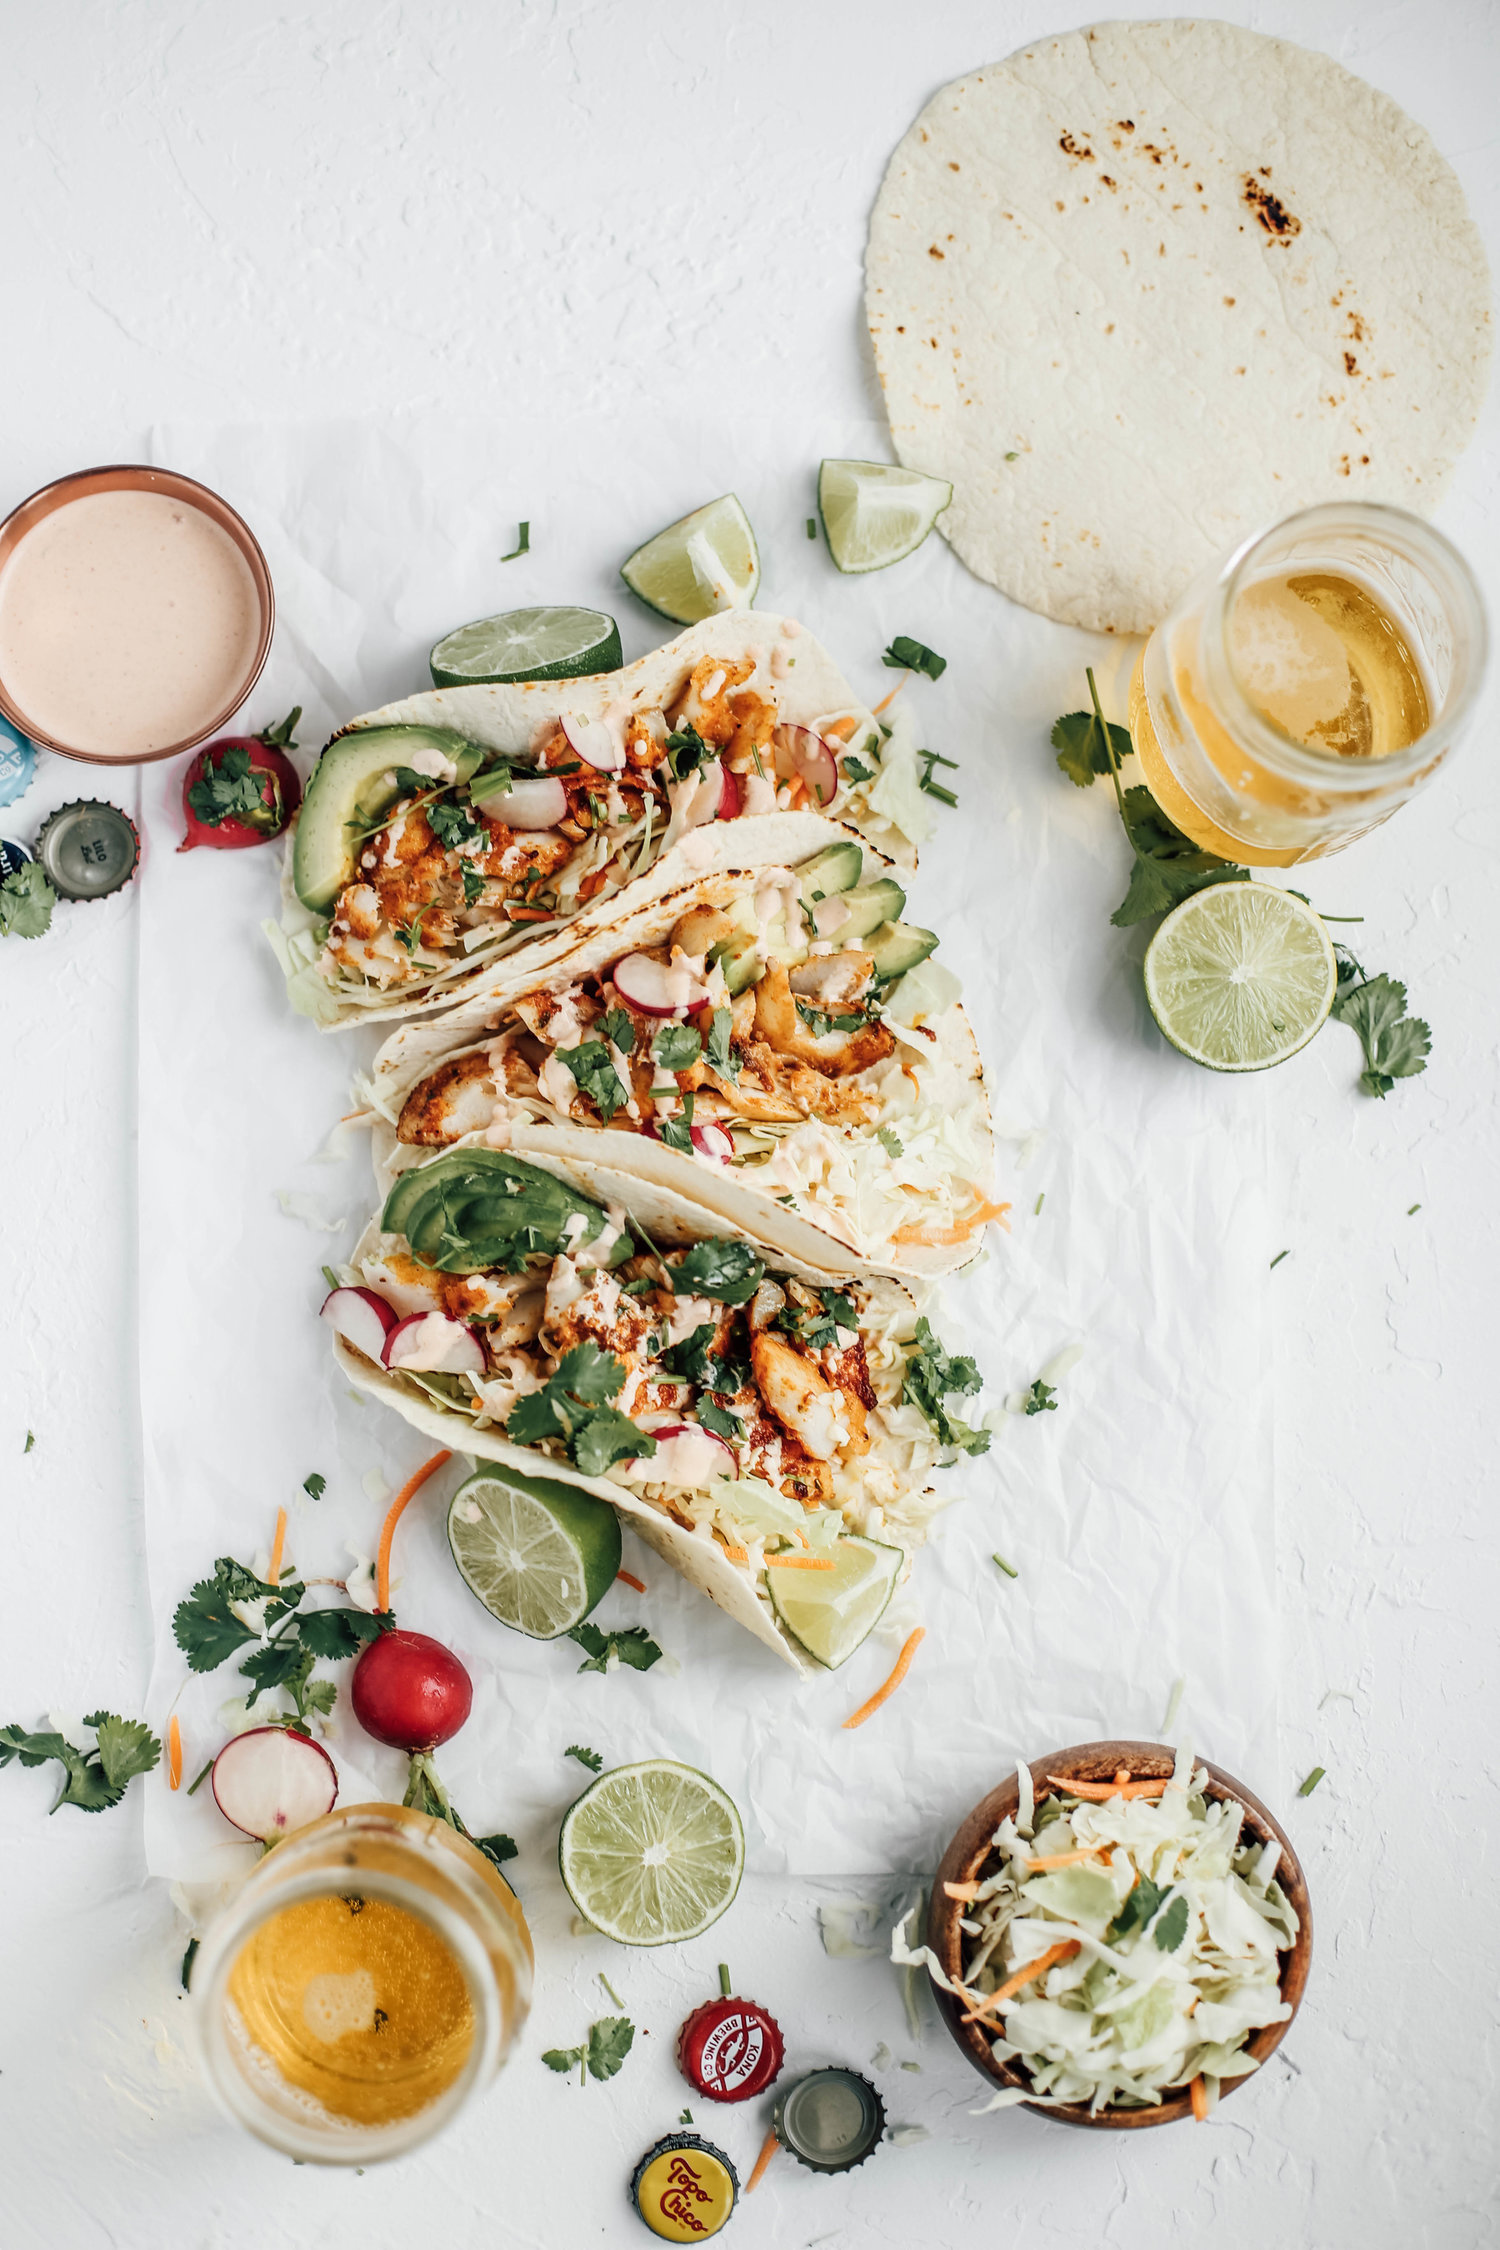 Blackened Cod Fish Tacos with Sriracha Lime Crema